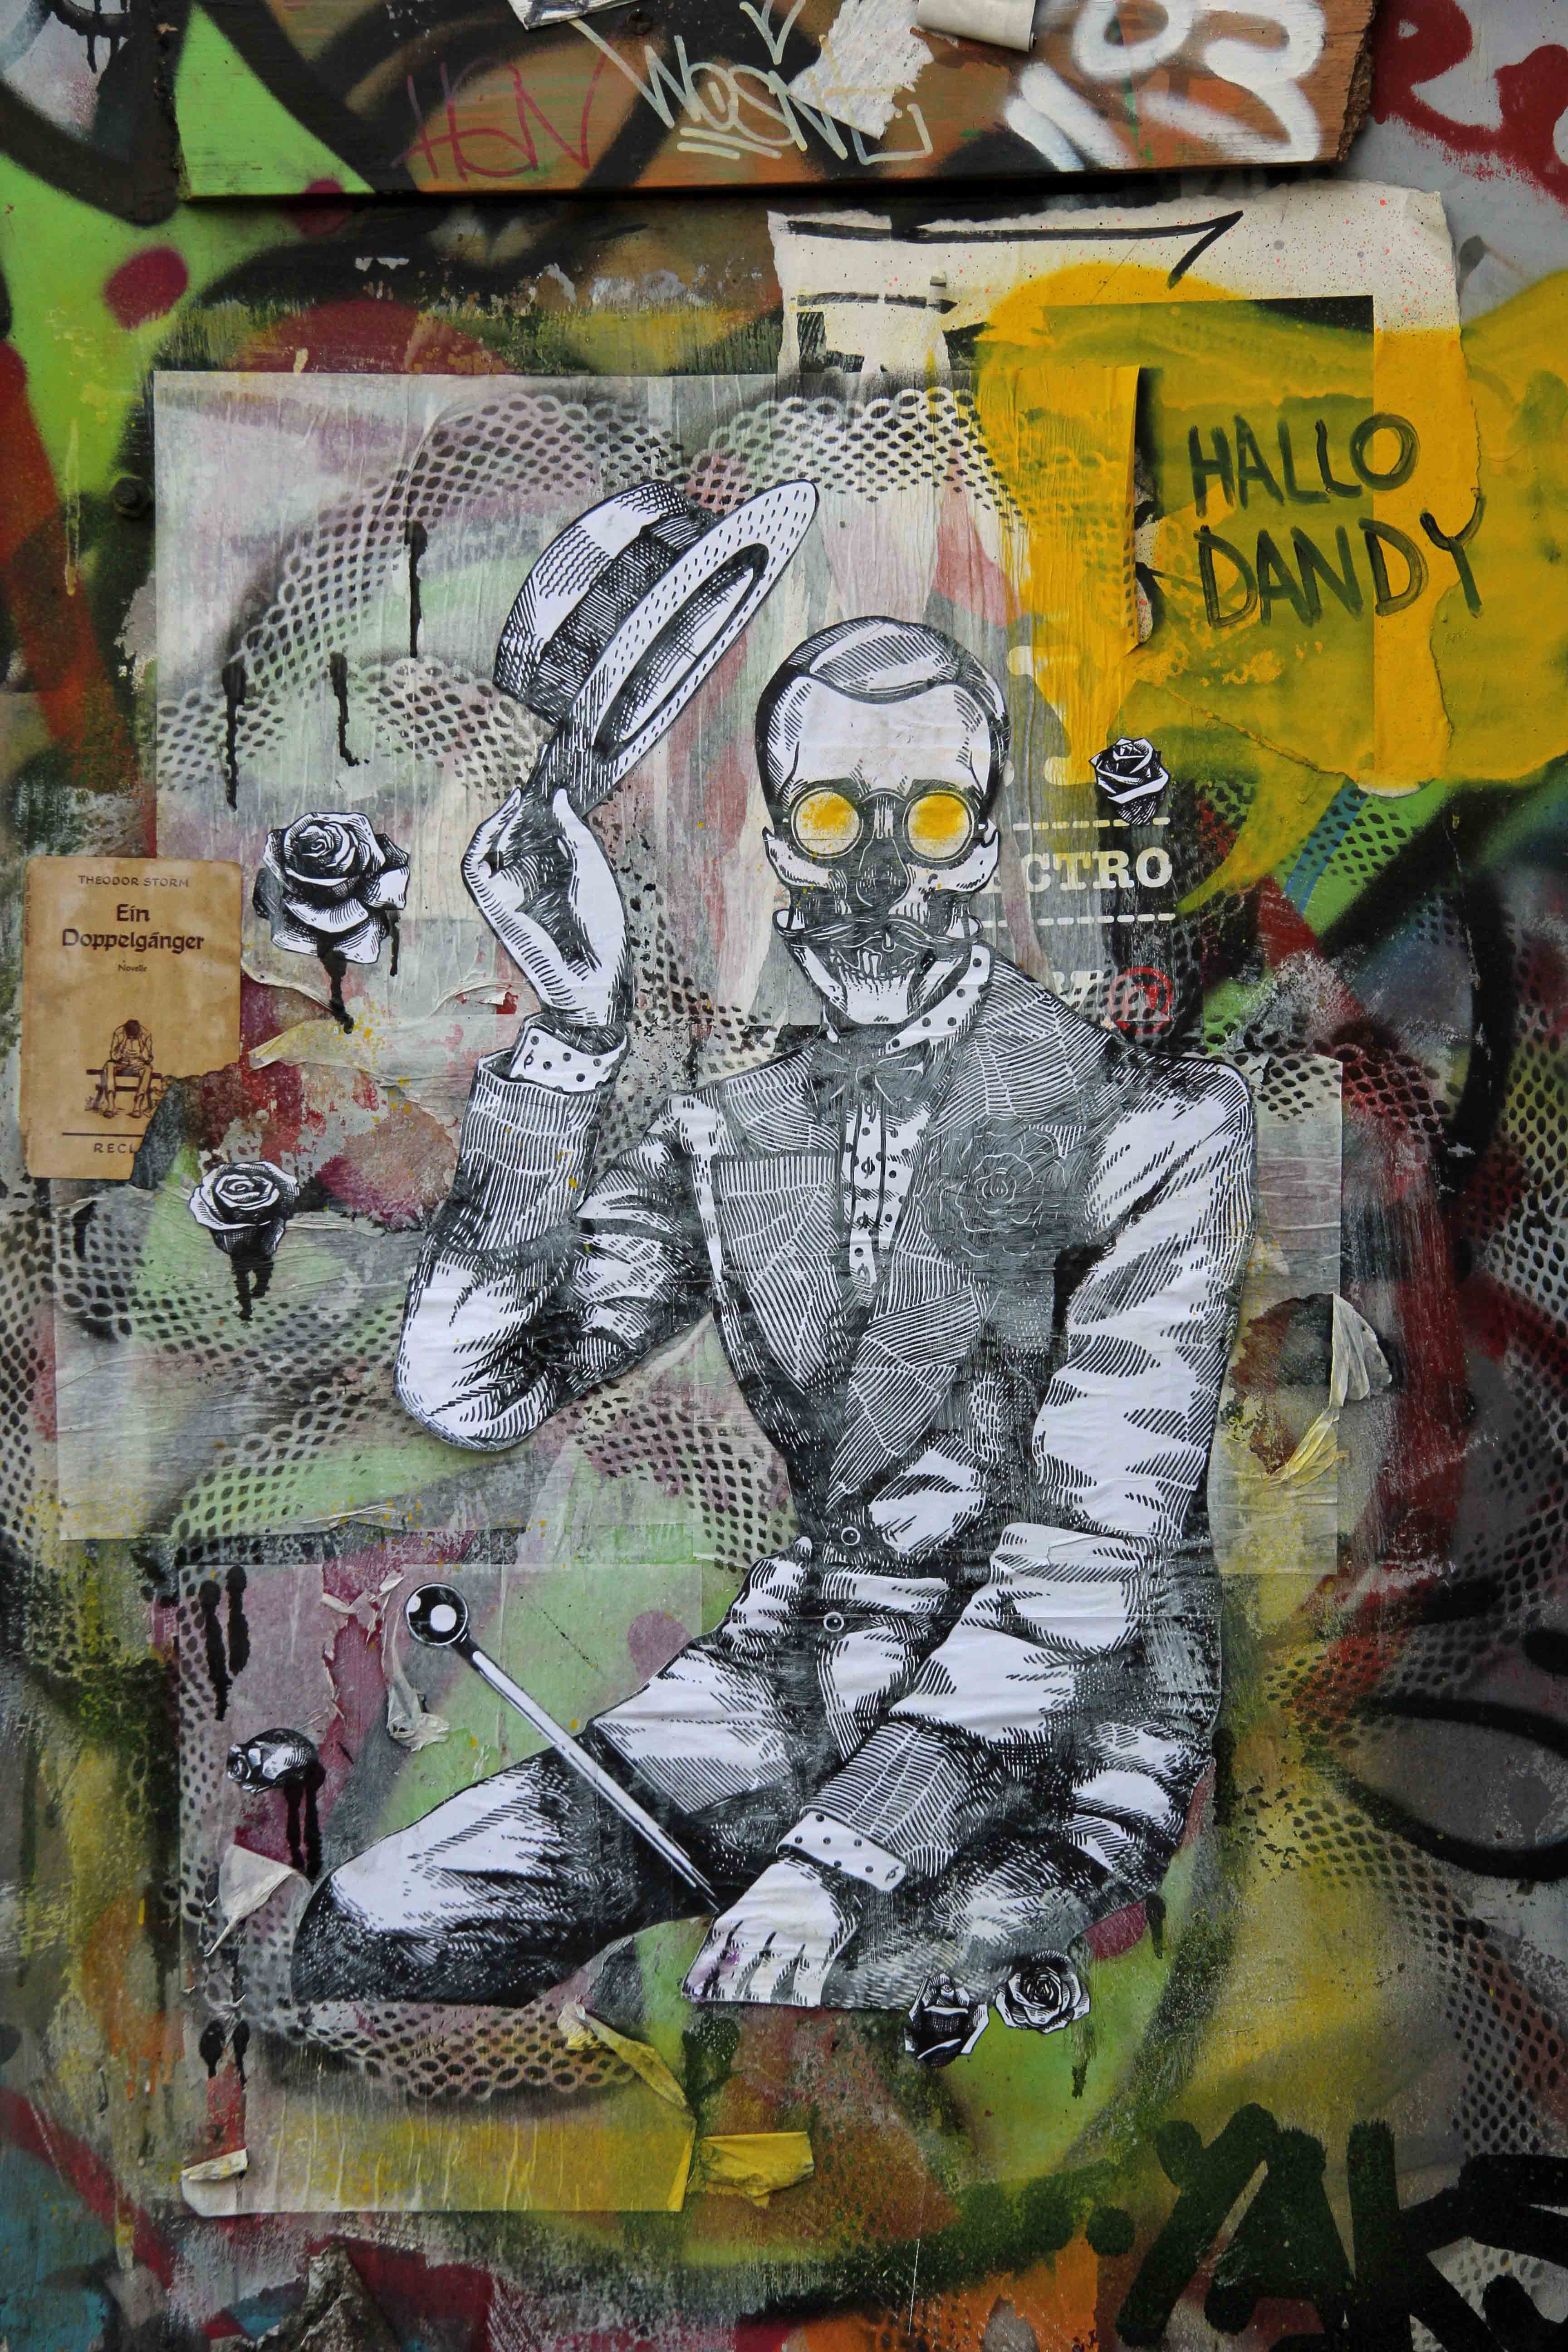 Hallo Dandy - Street Art by Unknown Artist in Berlin